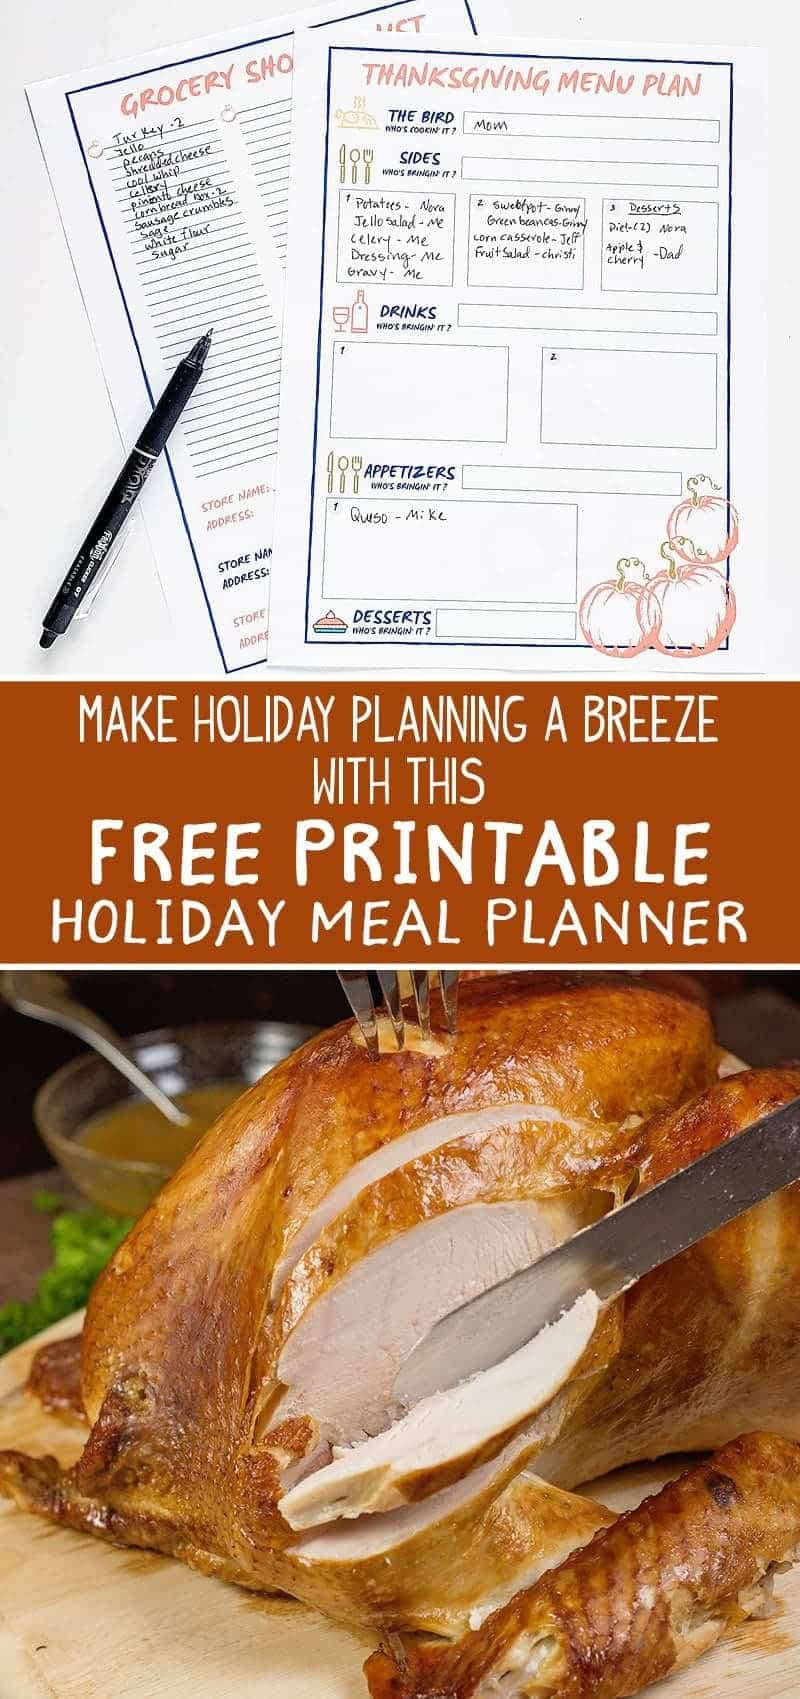 How to Have an Awesomely Organized Thanksgiving Dinner (+ FREE Thanksgiving Planner) - Scattered Thoughts of a Crafty Mom by Jamie Sanders